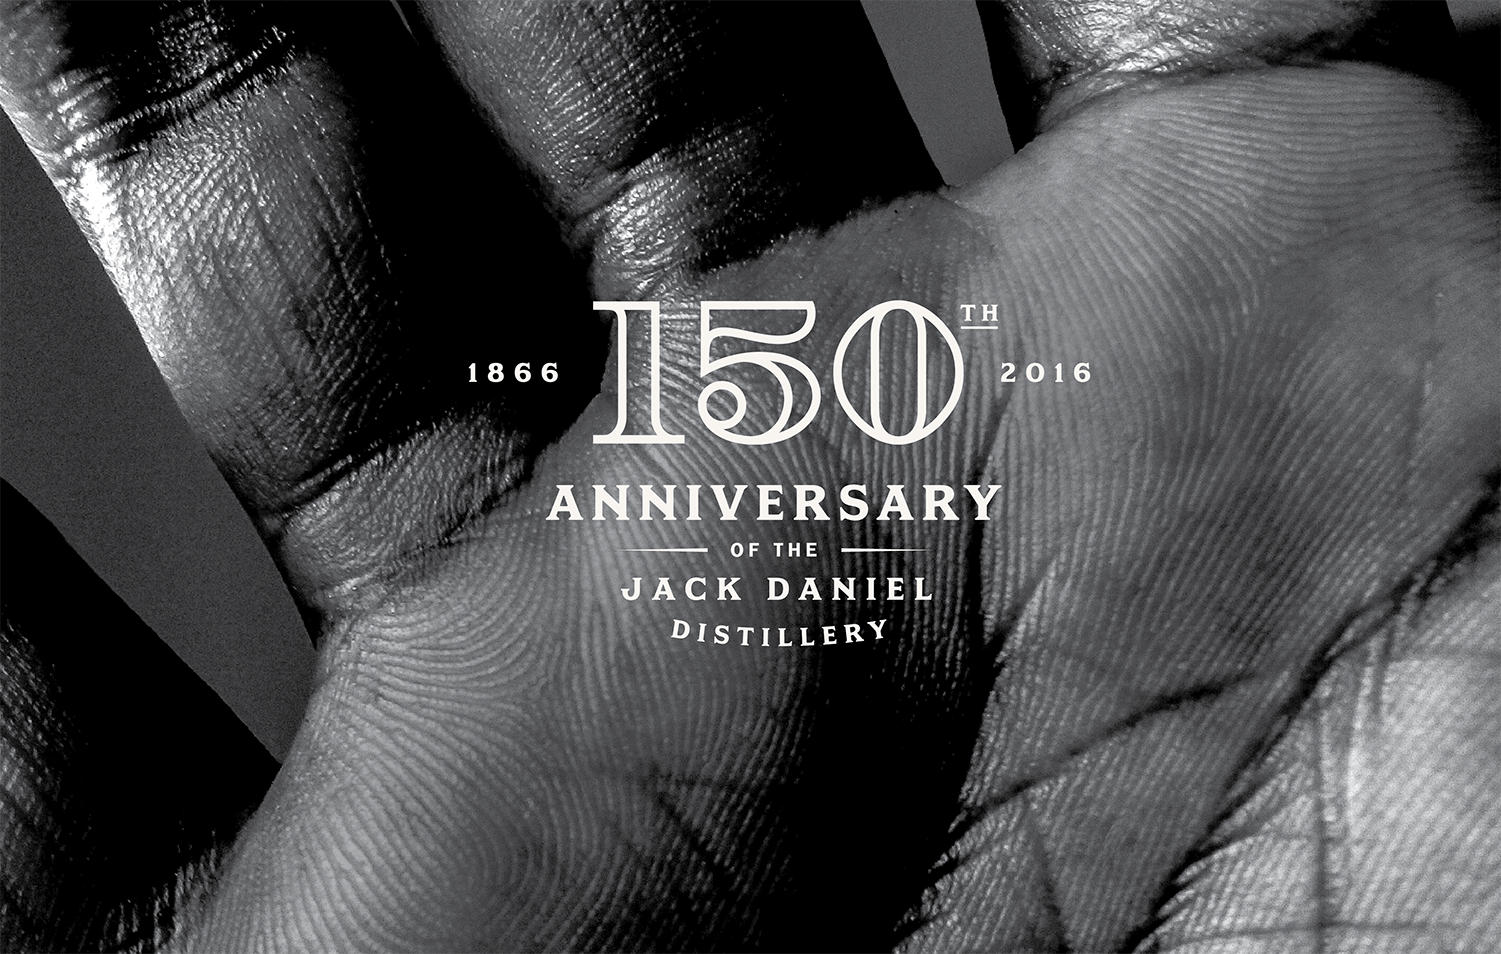 JACK DANIEL'S 150th ANNIVERSARY   Through the line campaign